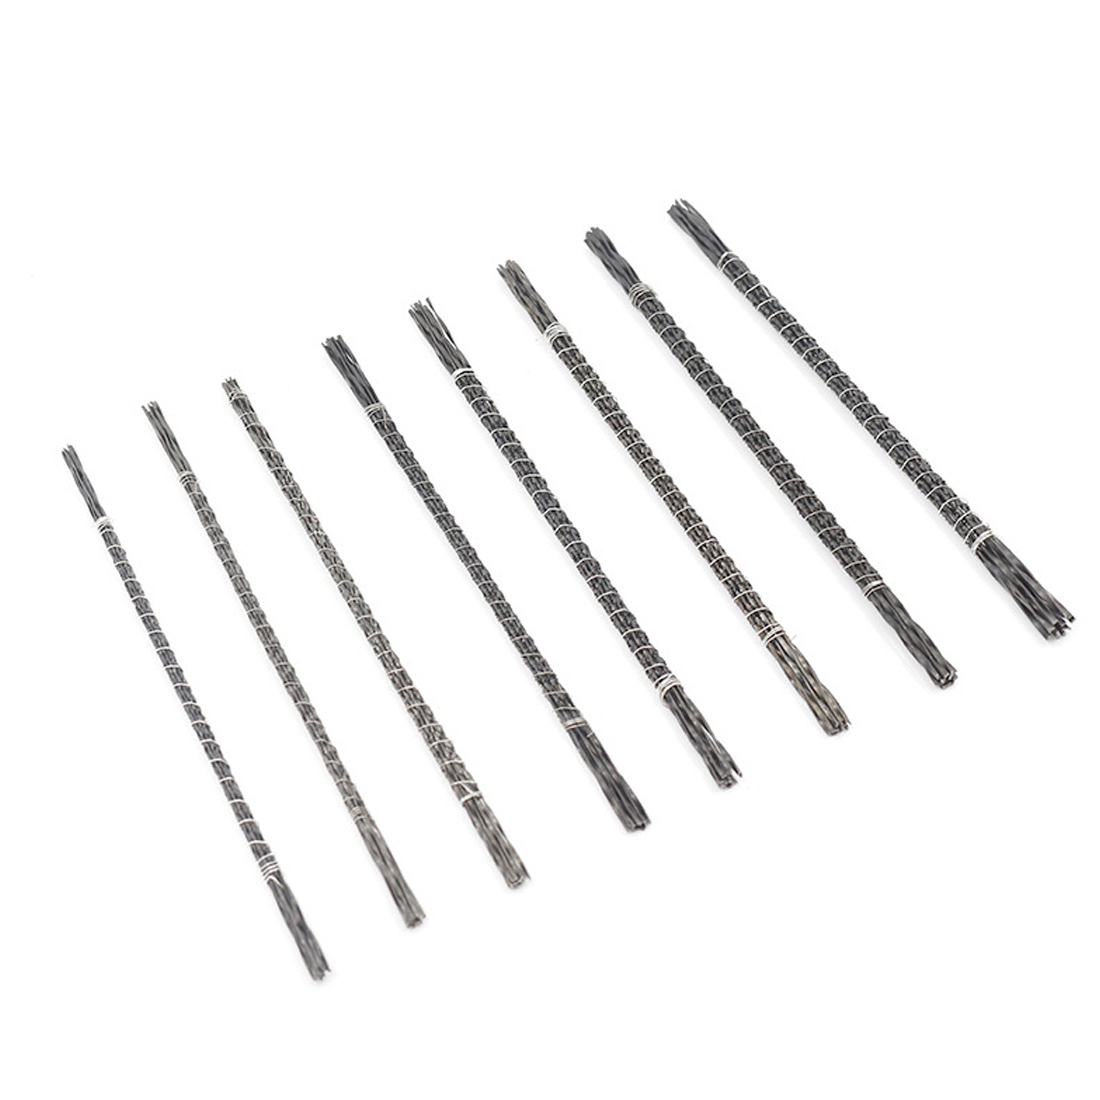 12pcs/set Spiral 130mm for Adjustable Frame U-shape  Hacksaw DIY Hand Tools For Jewelry